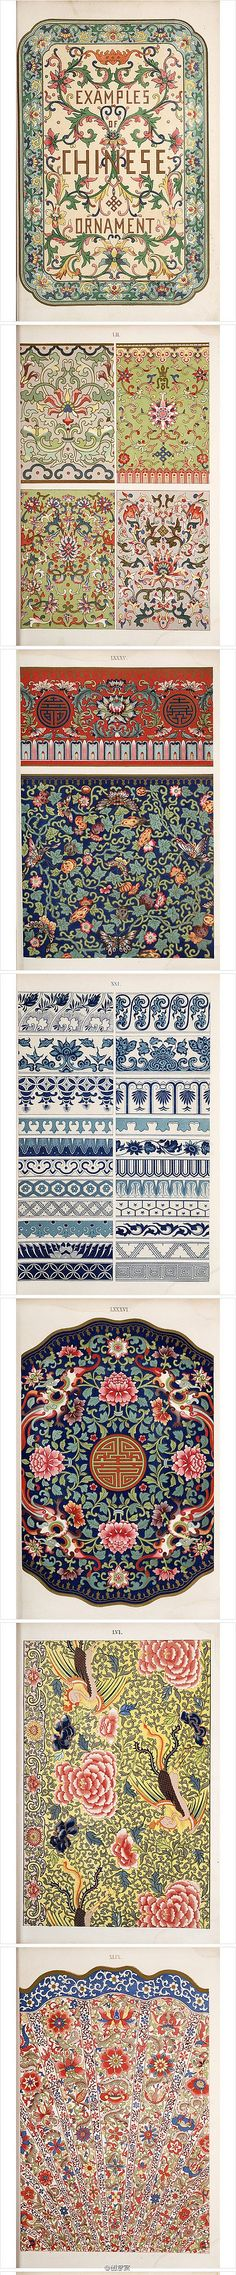 Examples of Chinese ornamentation